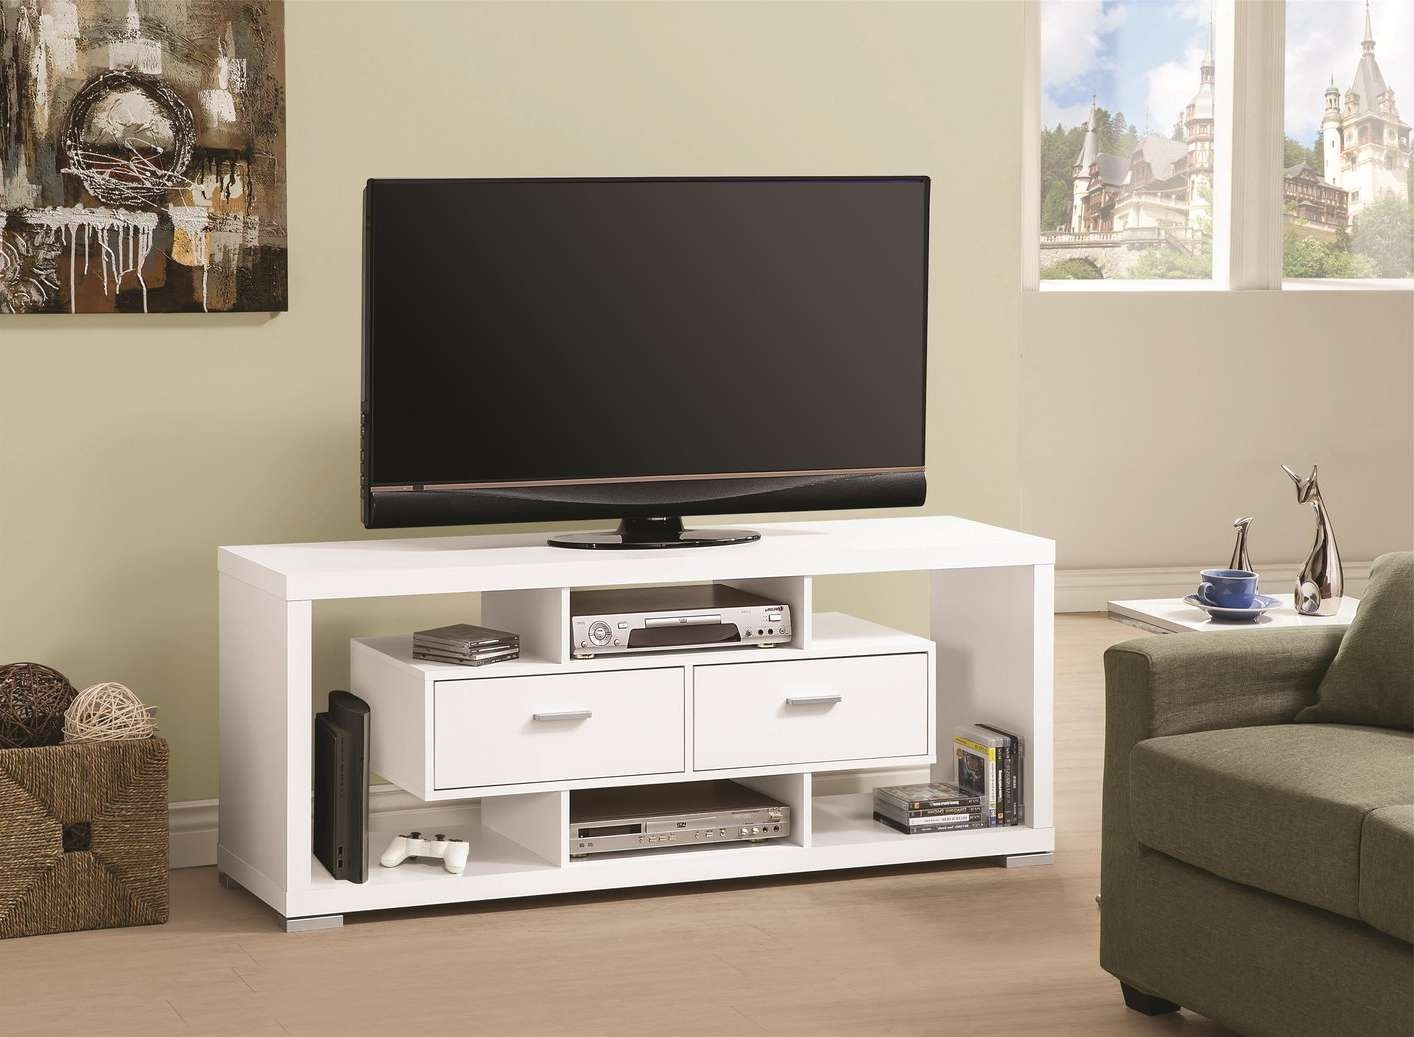 White Wood Tv Stand – Steal A Sofa Furniture Outlet Los Angeles Ca Throughout White Wood Tv Stands (View 6 of 15)